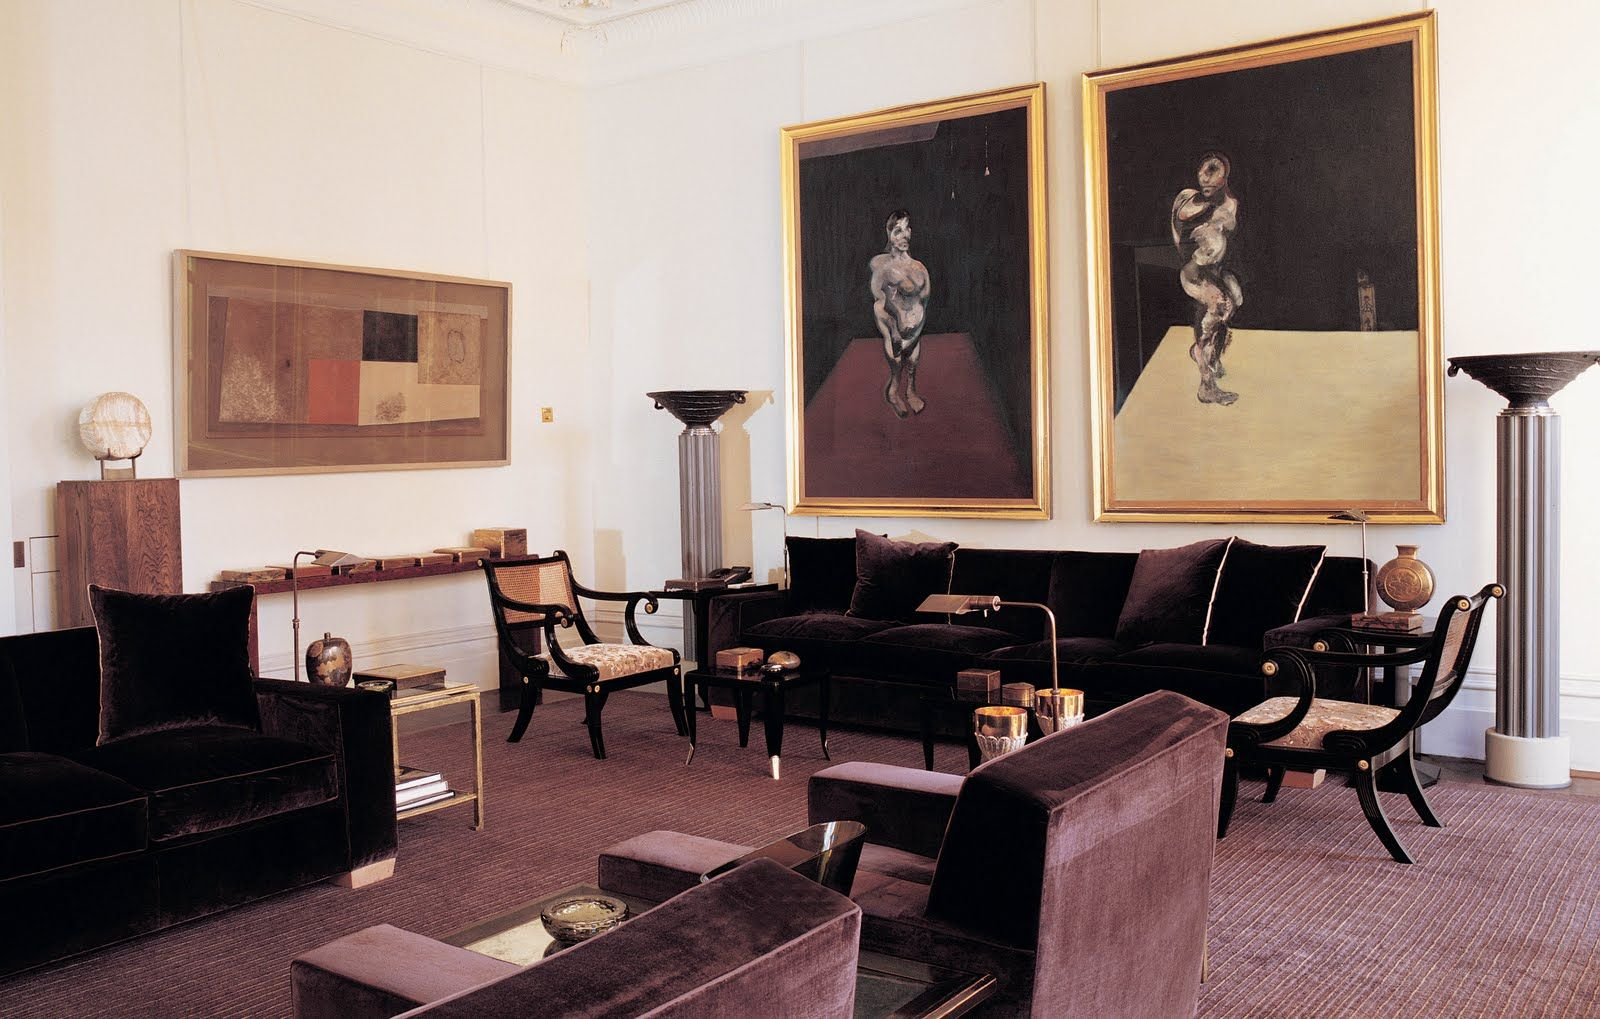 jacques grange interior.com - Yahoo Image Search Results   MODERN ...